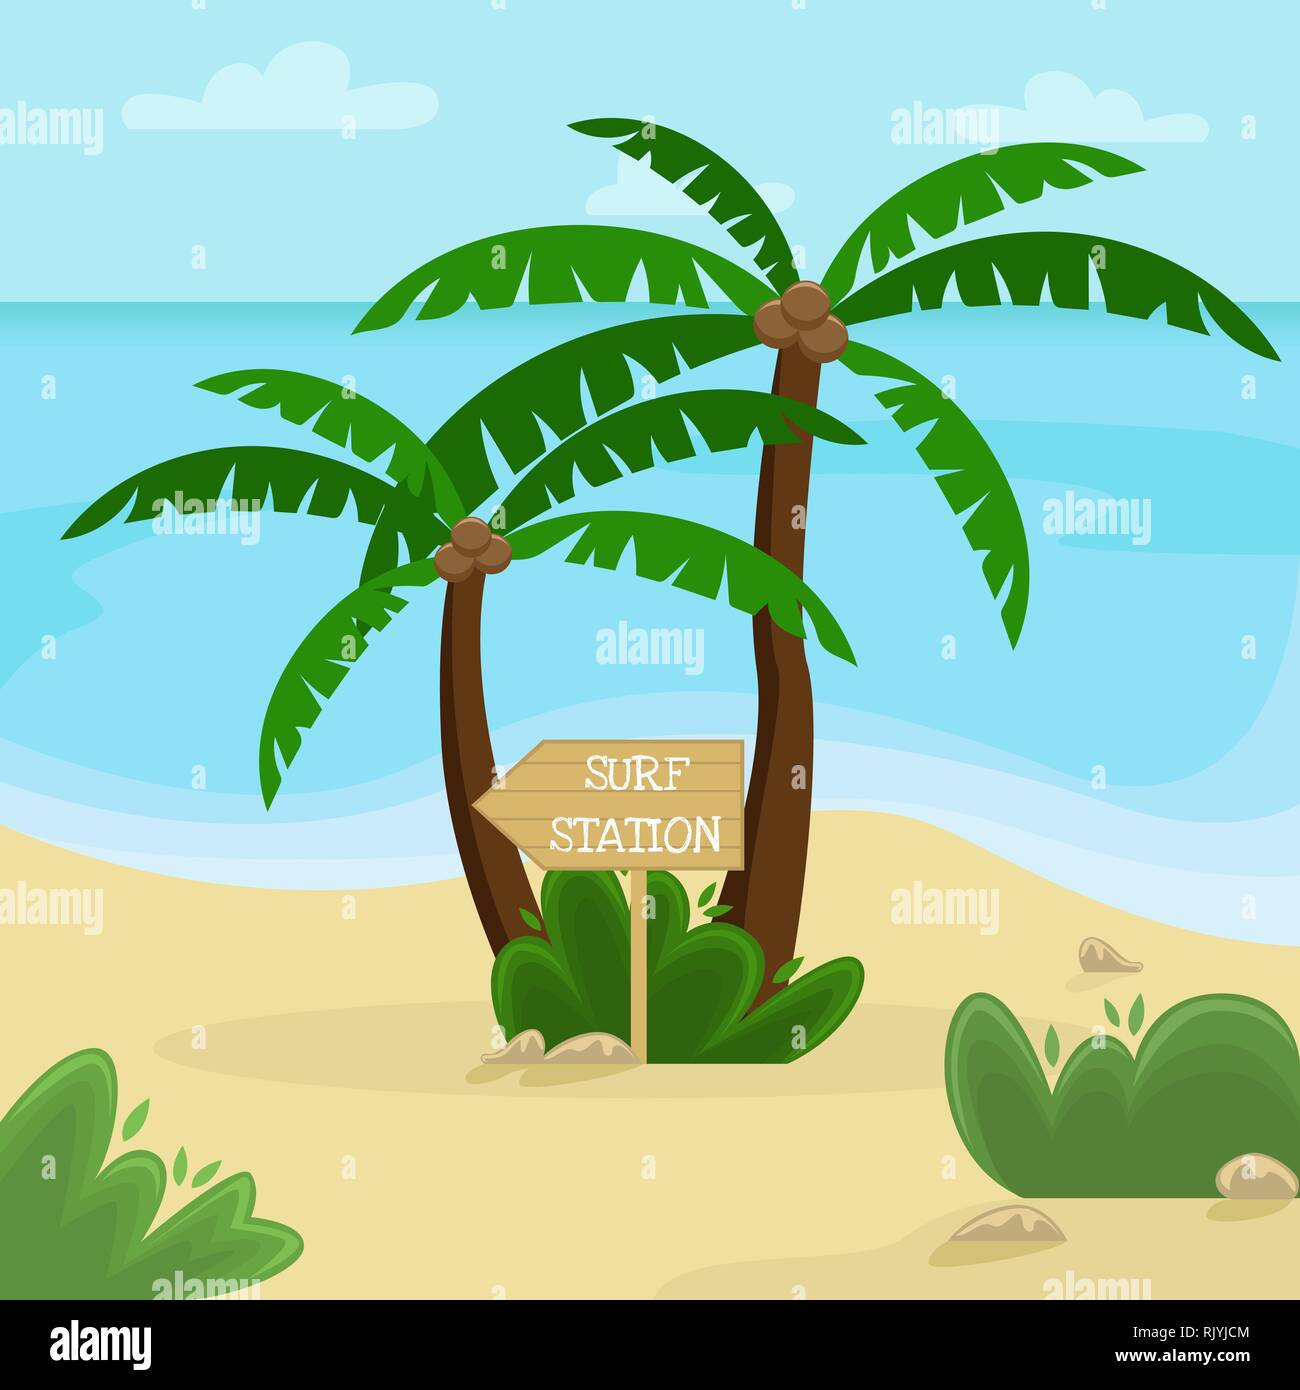 Beach landscape. Palm trees with a wooden pointer to the surf station. Flat vector illustration. - Stock Vector